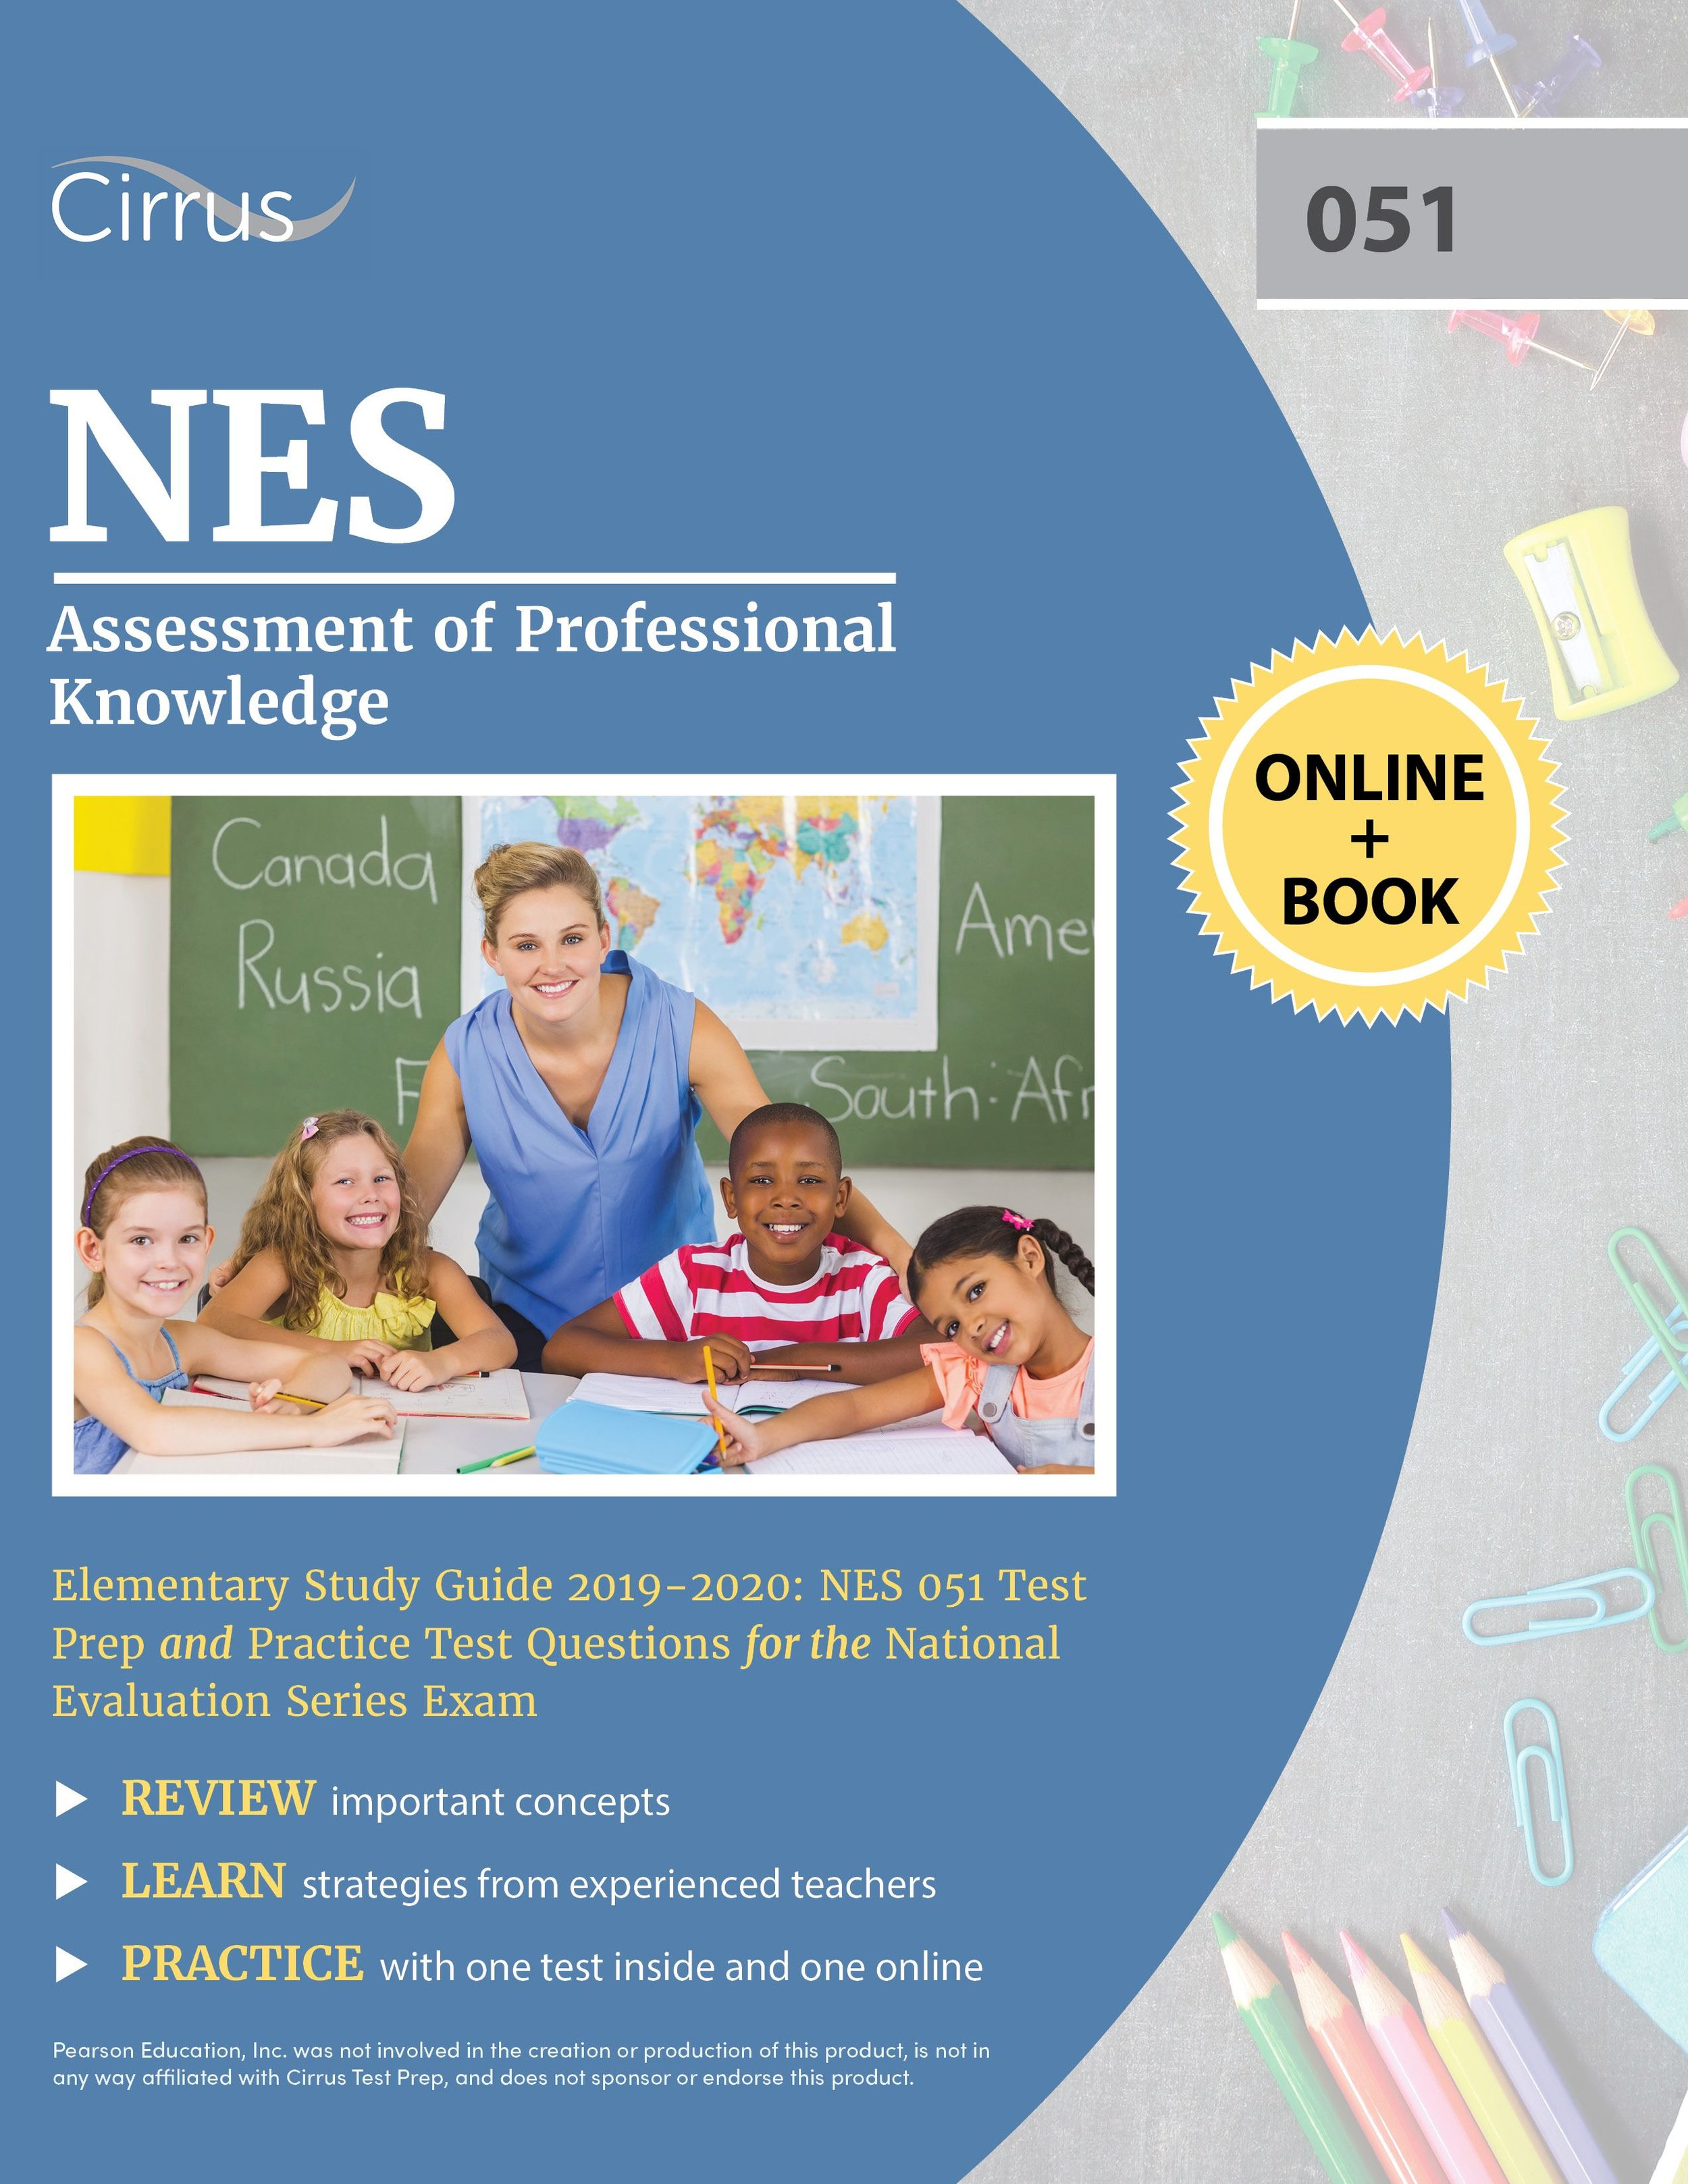 NES Assessment of Professional Knowledge 051 Elementary Study Guide 2019 – 2020